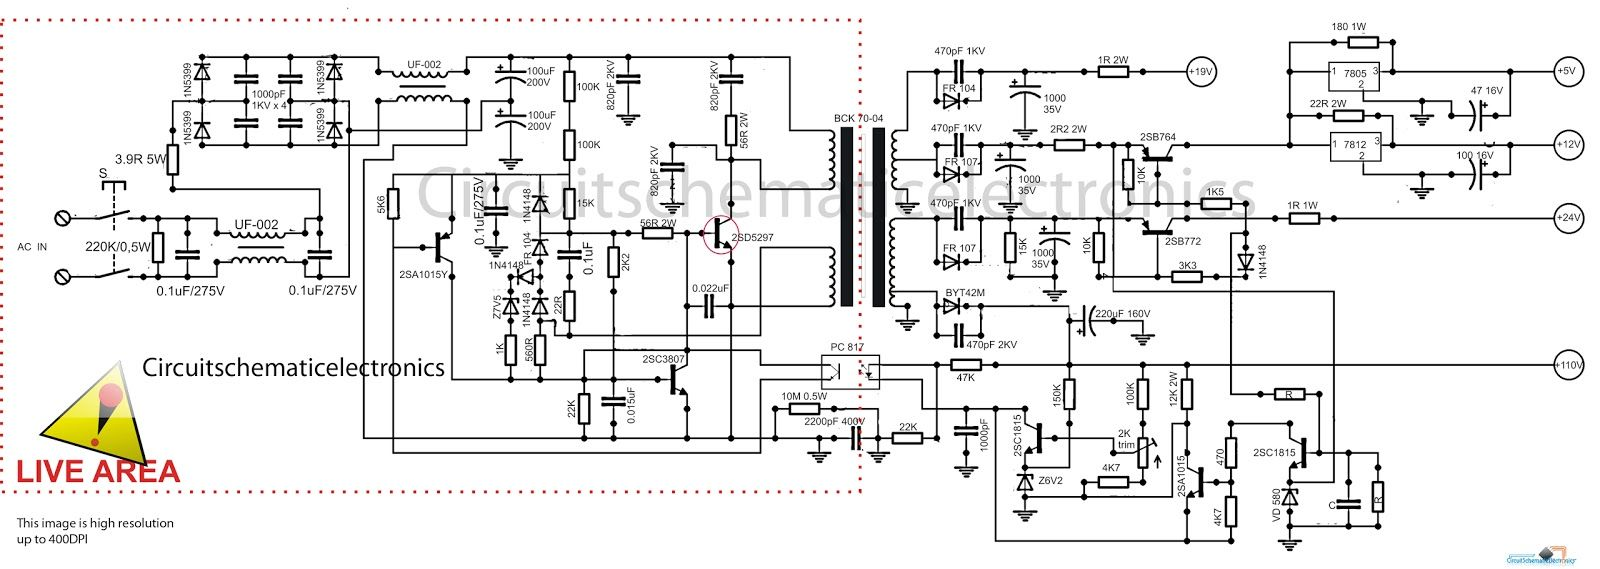 Switching Power Suplly For Color Television Circuit About 200m Fm Transmitter Electronic Circuits And Diagramelectronics Supply